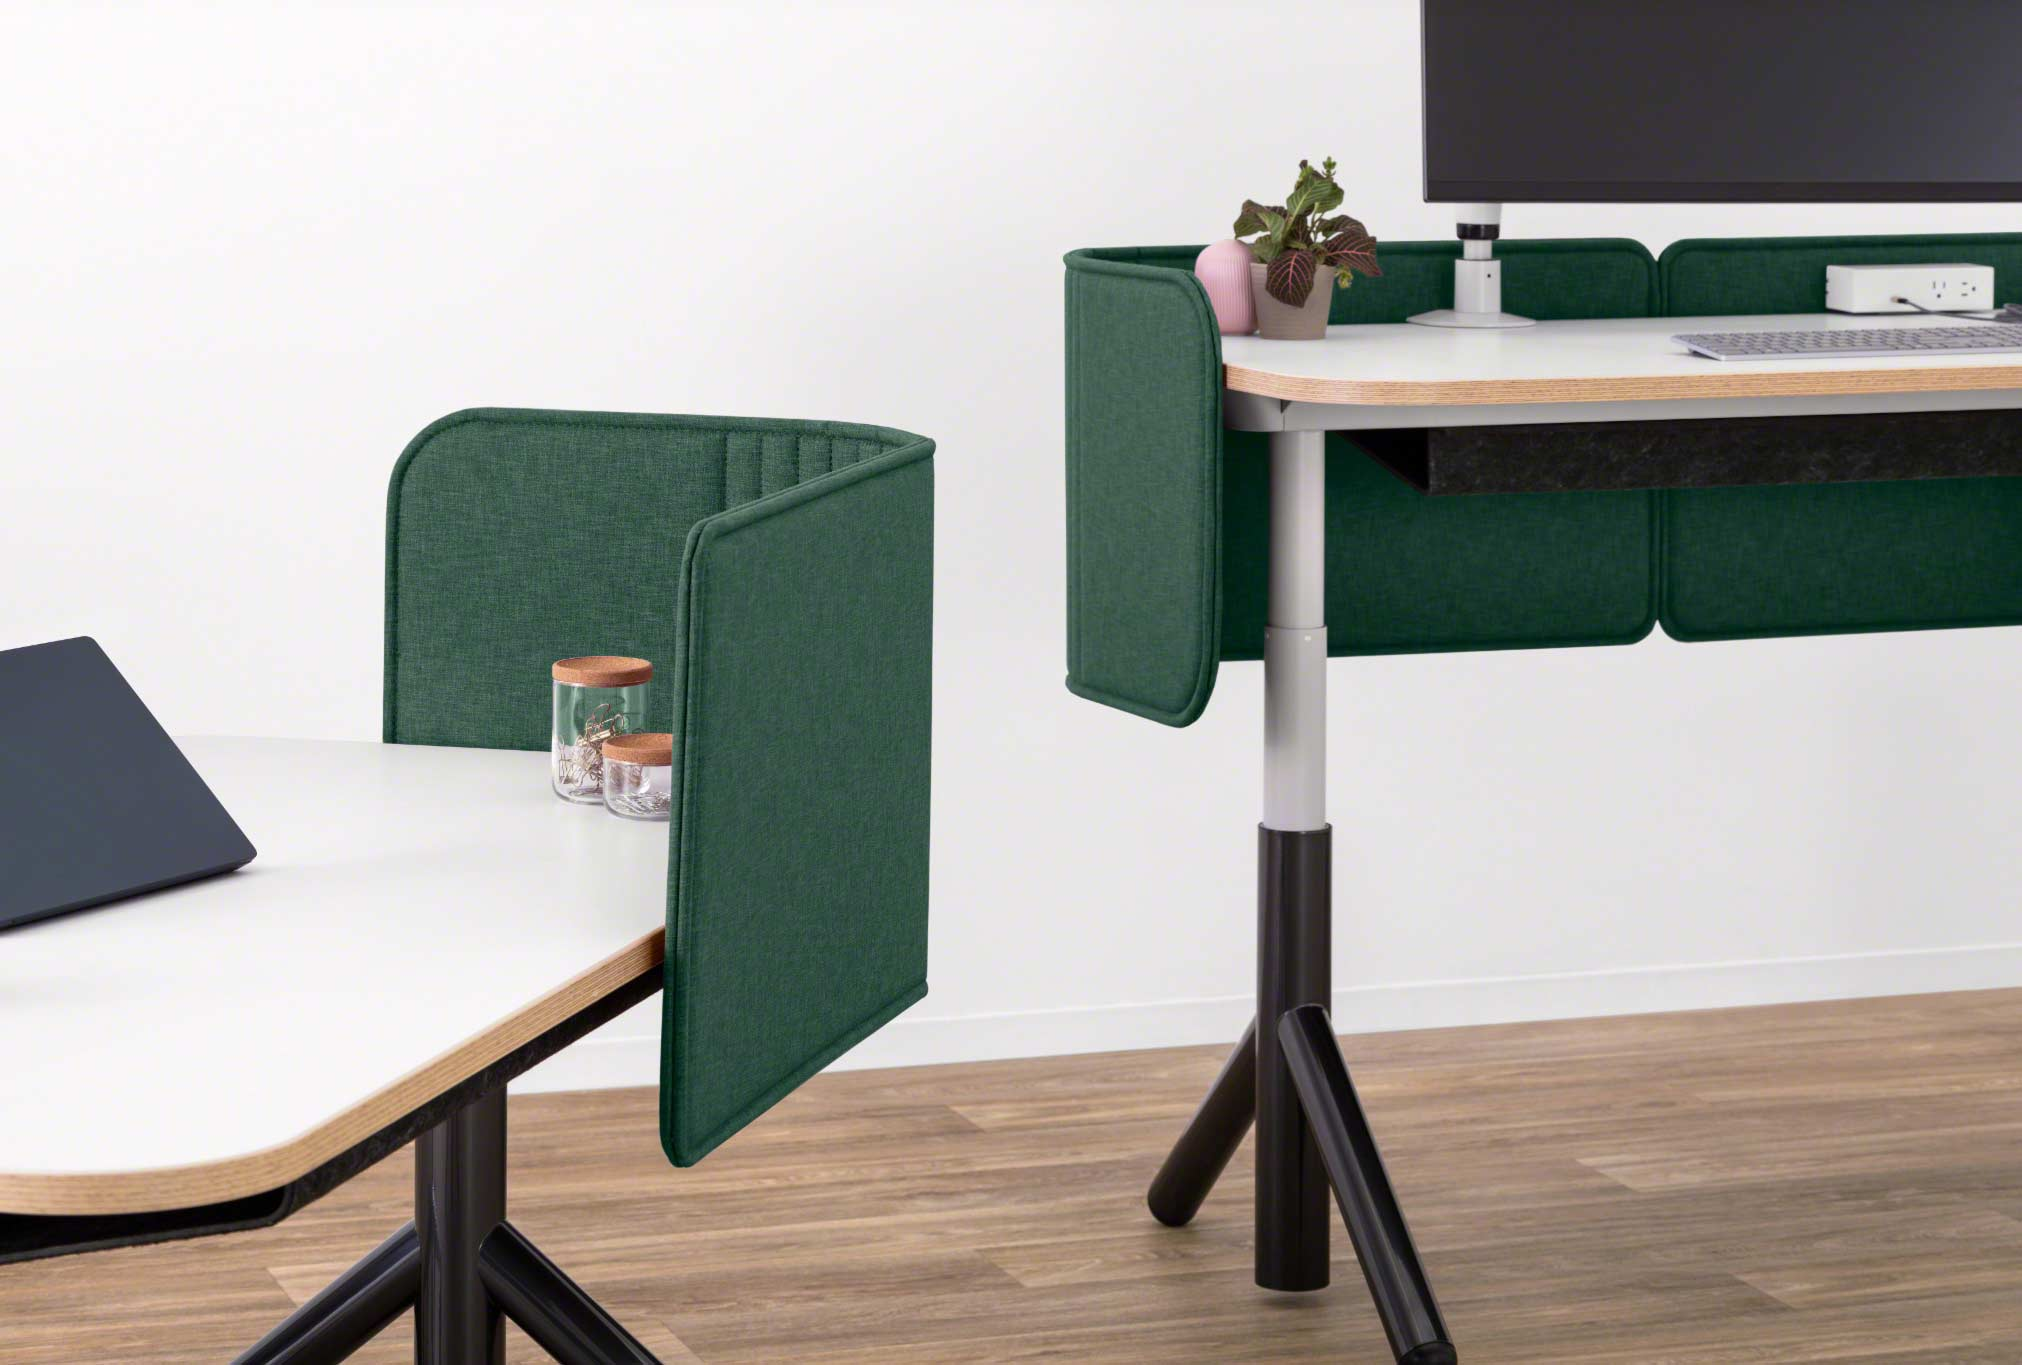 Close-up of Two Steelcase Flex height-adjustable desks pictured with green privacy screens attached.